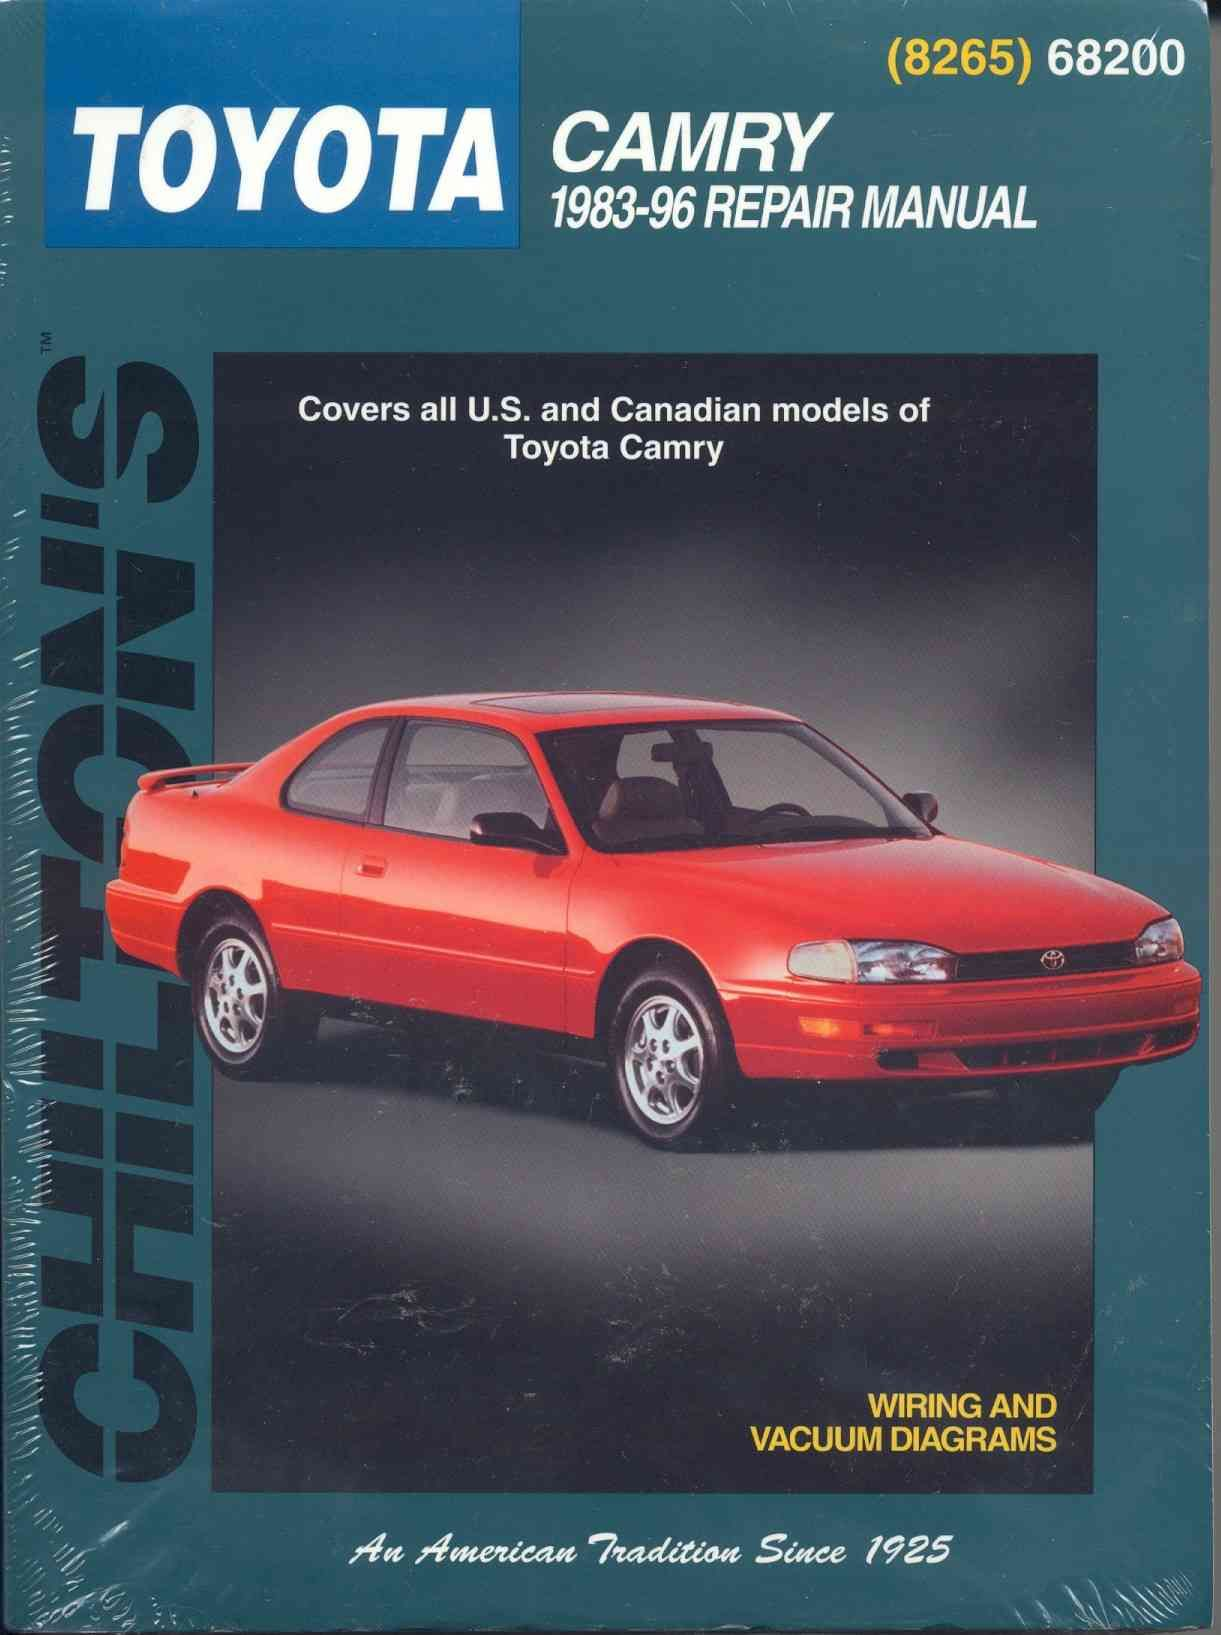 Chiltons Toyota Camry 1983 96 Repair Manual Pinterest 1997 T100 Engine Vacuum Diagram